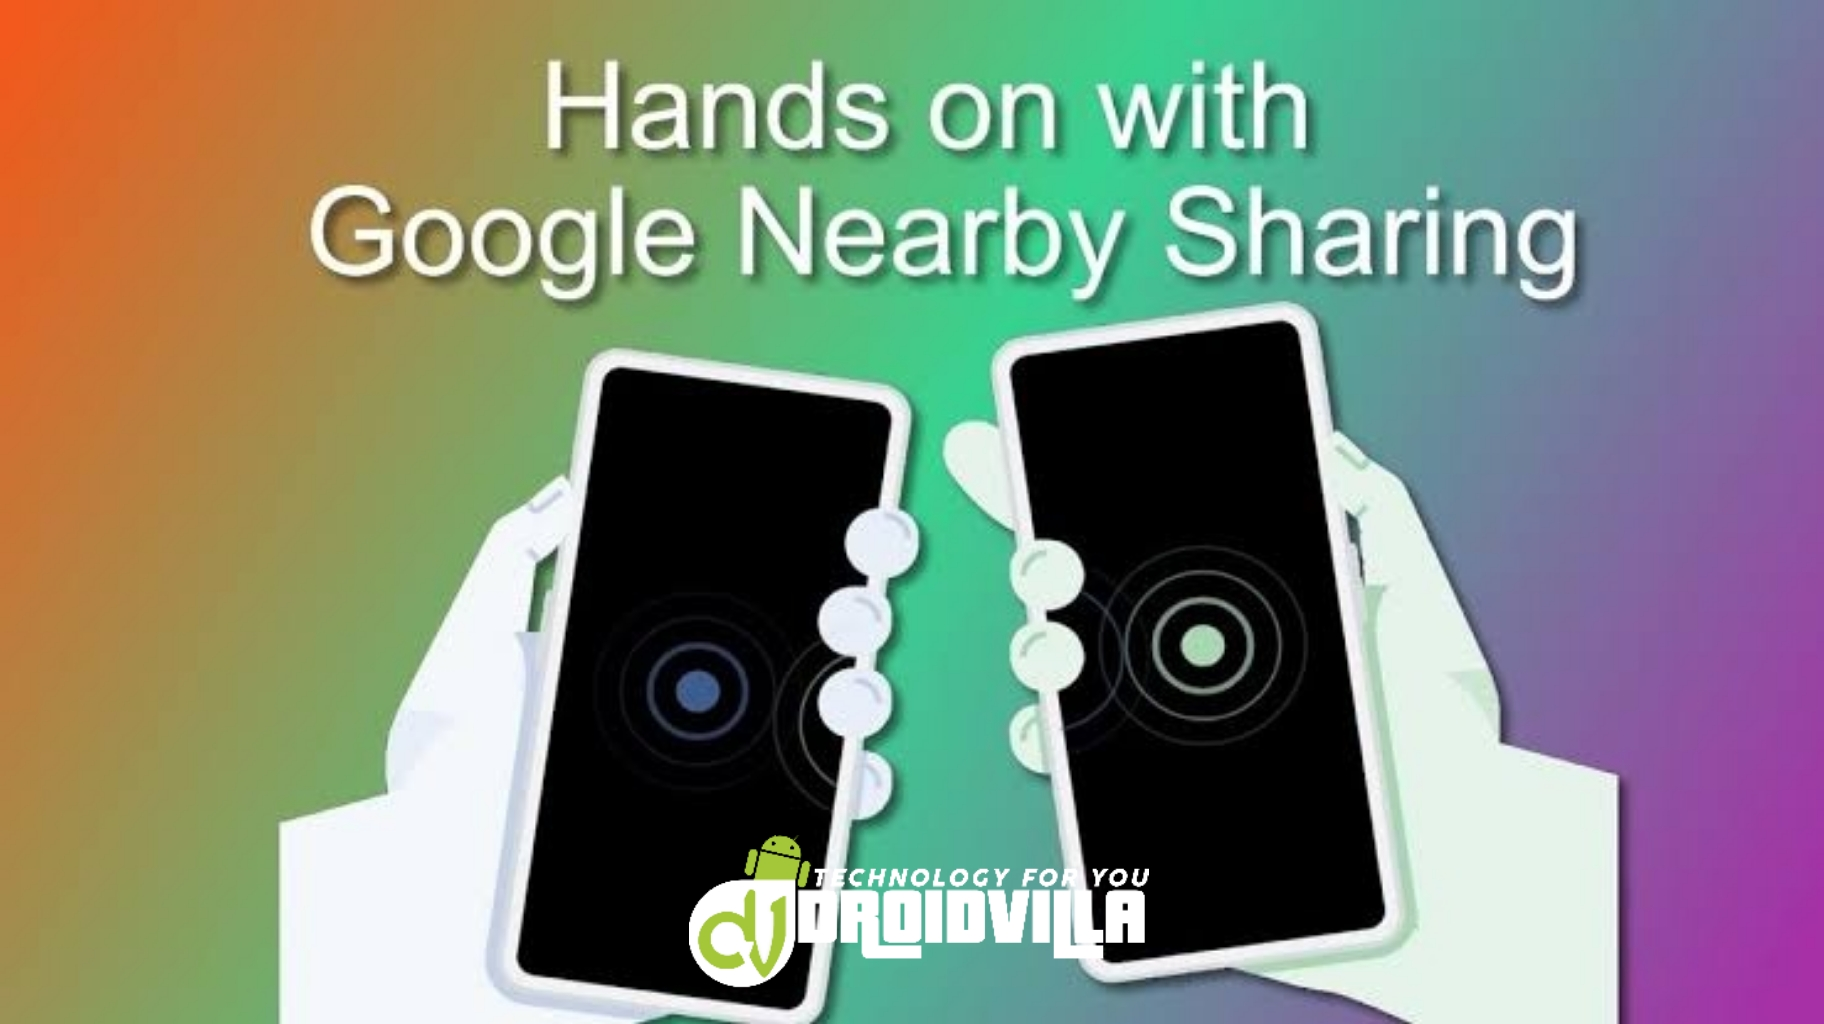 Google's nearby sharing feature